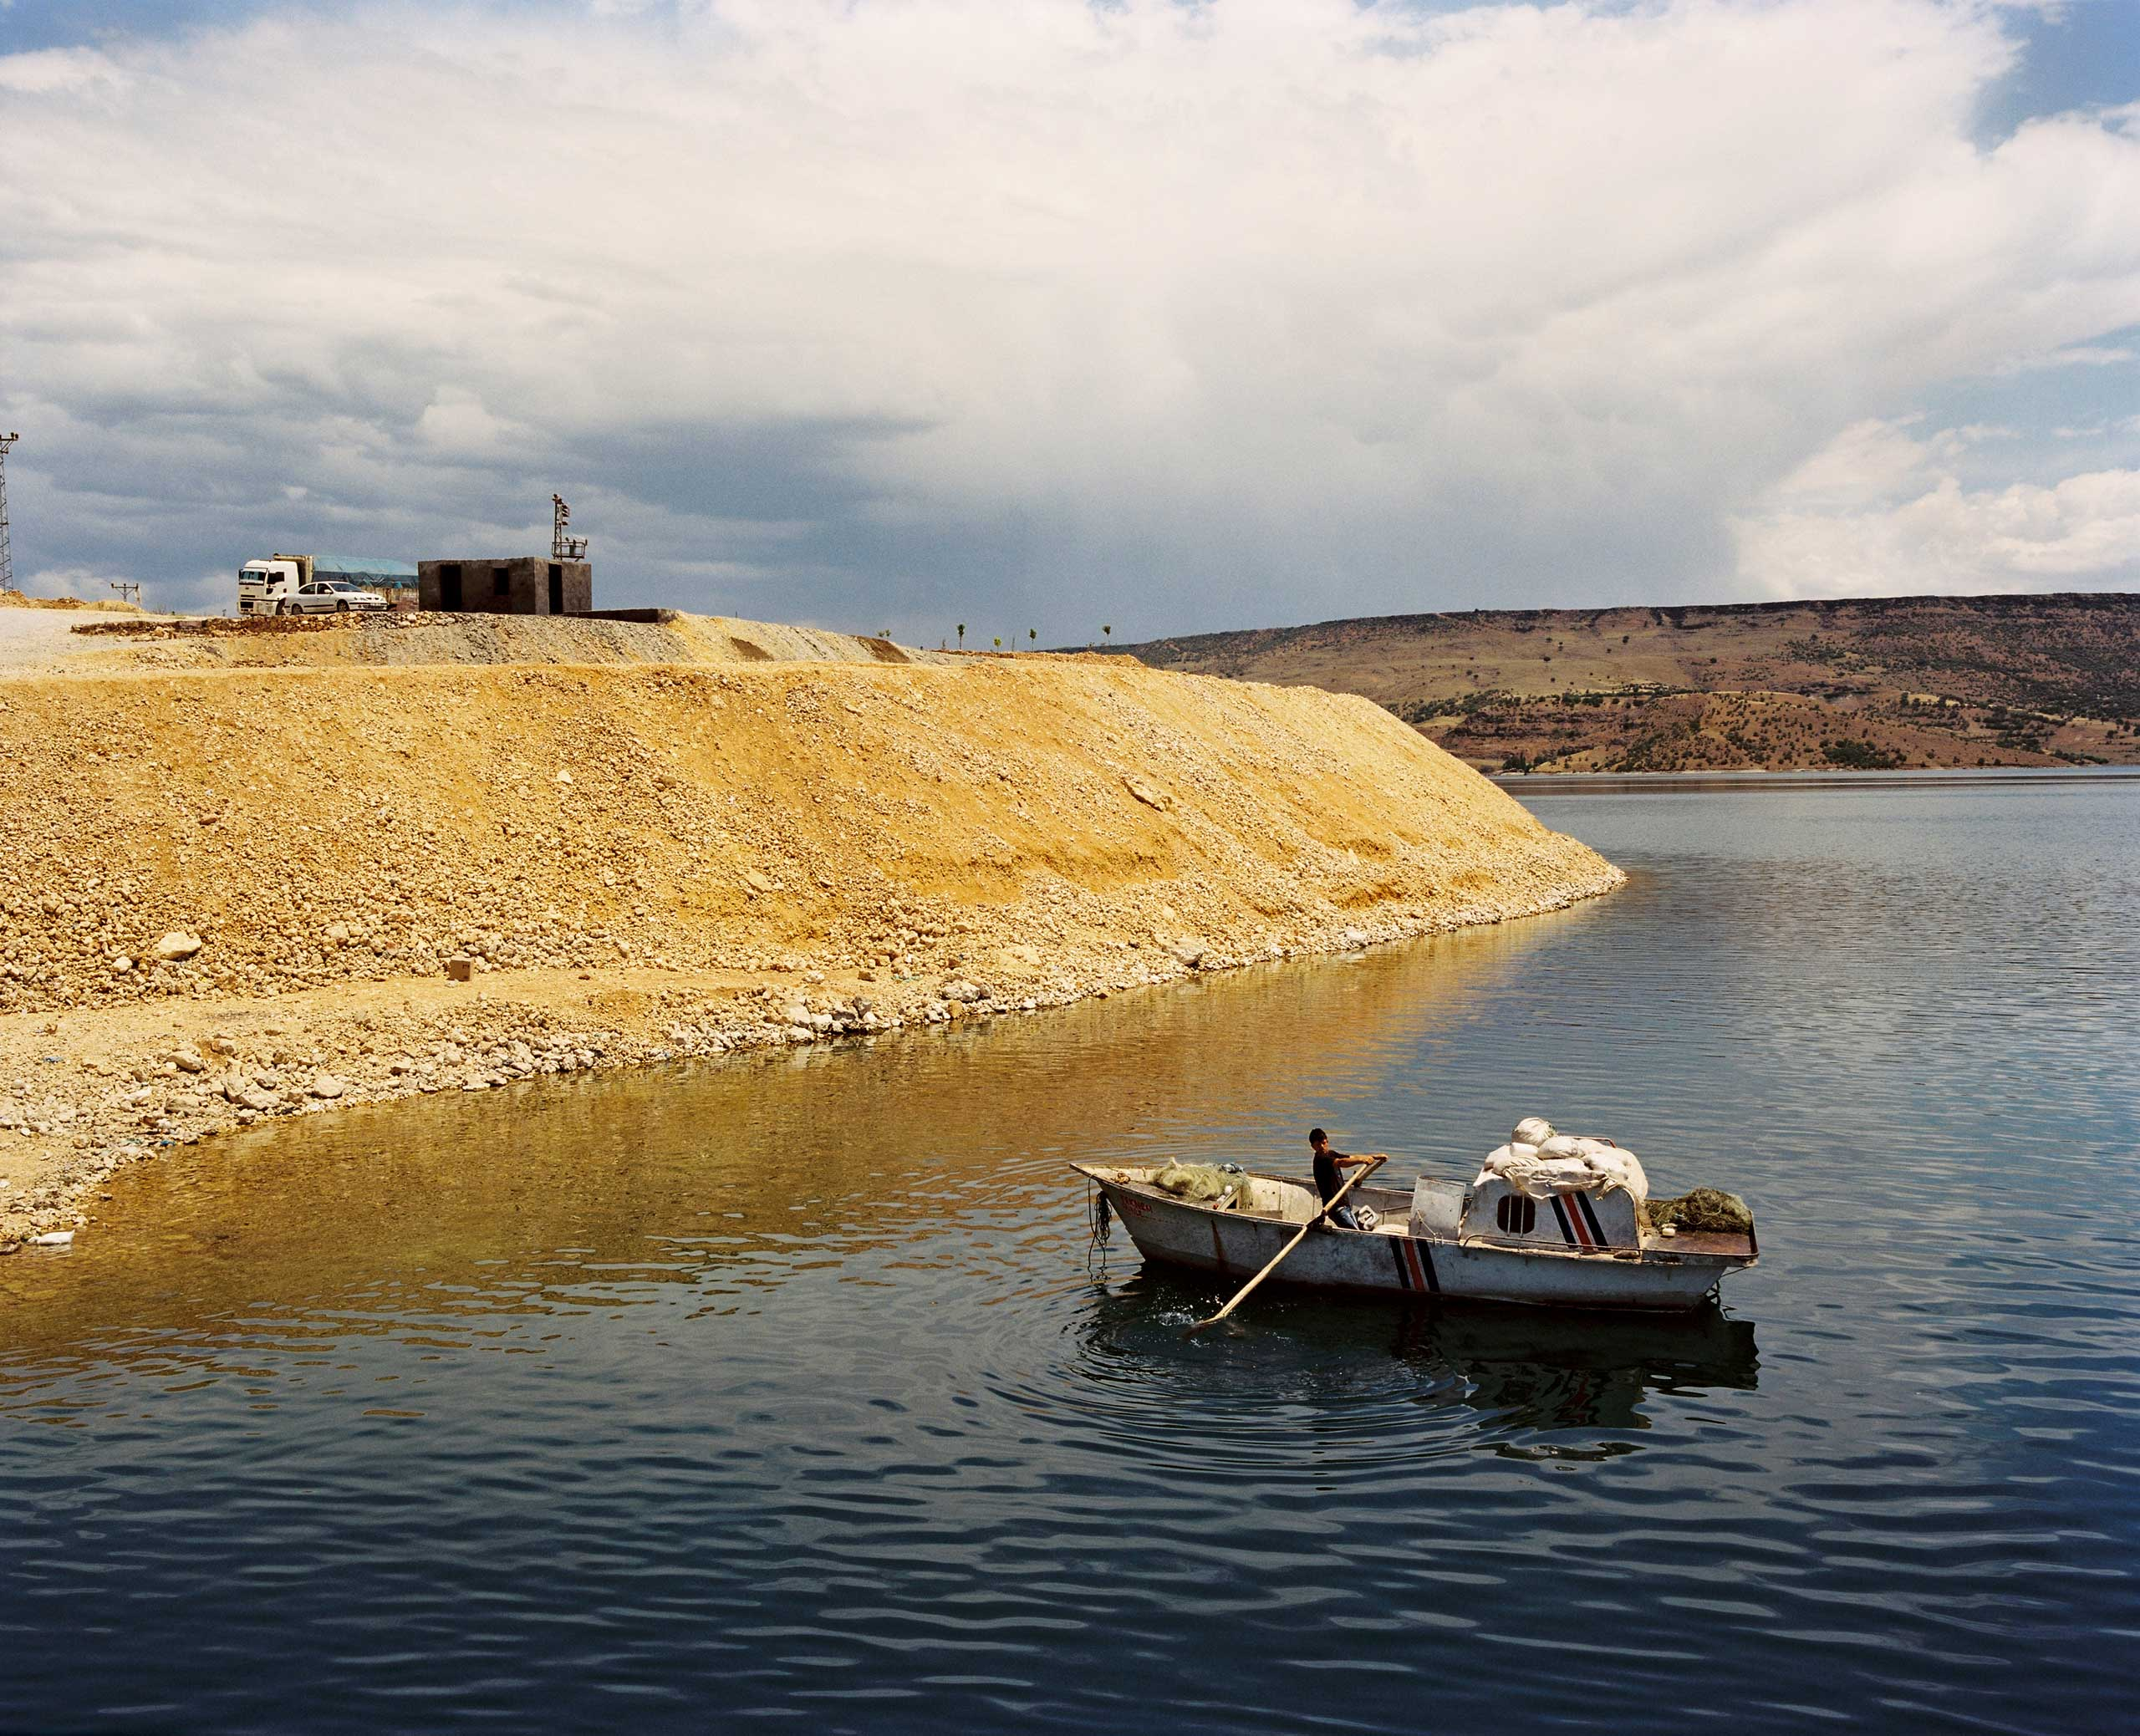 A man paddles in a boat across the Euphrates River near the hydroelectric Keban Dam. Turkey.